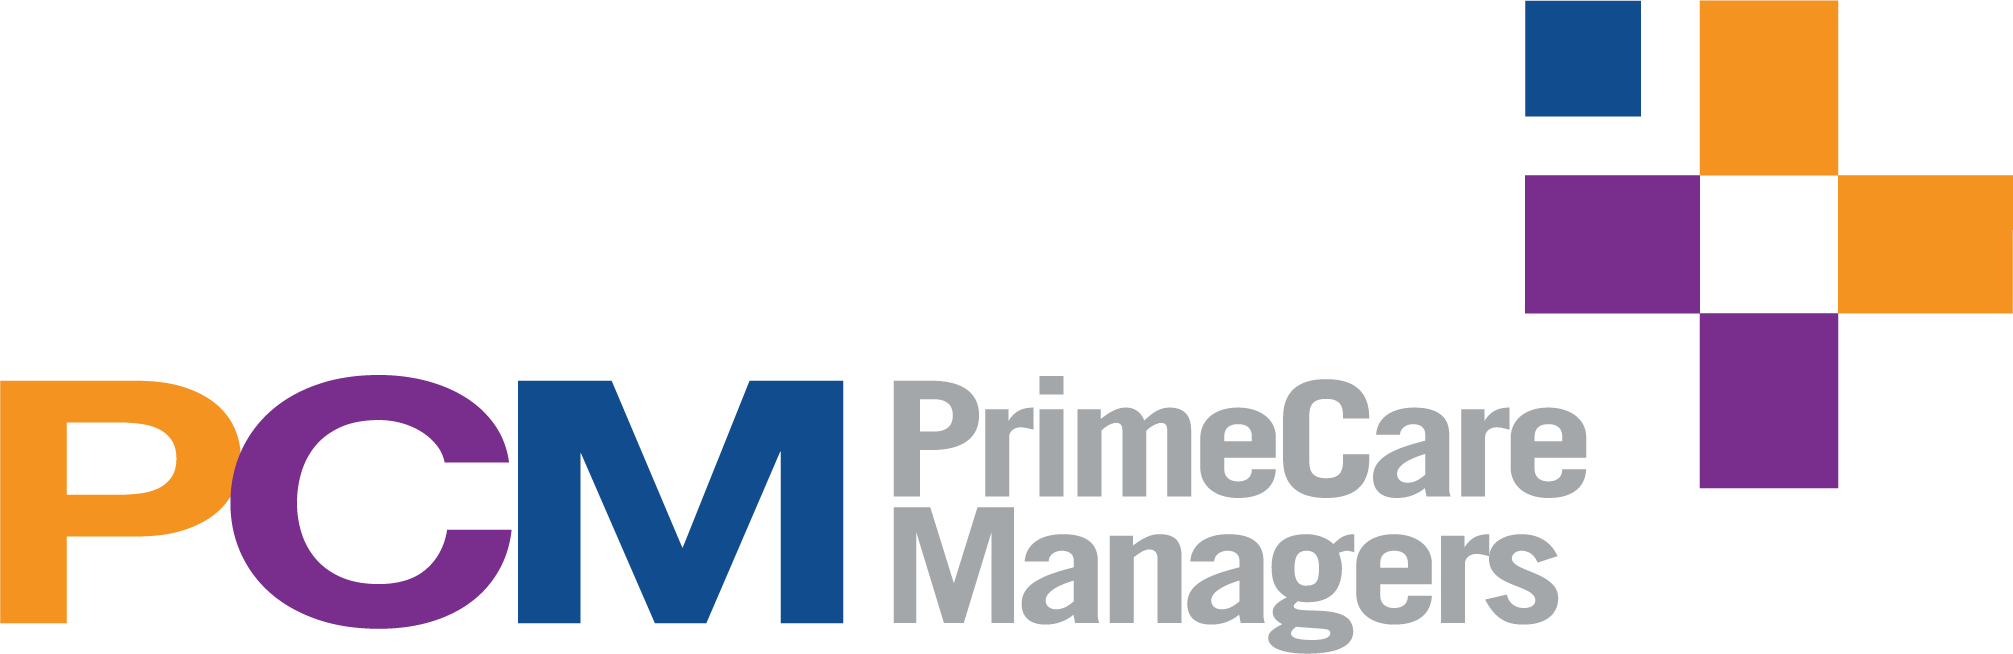 Prime Care Managers